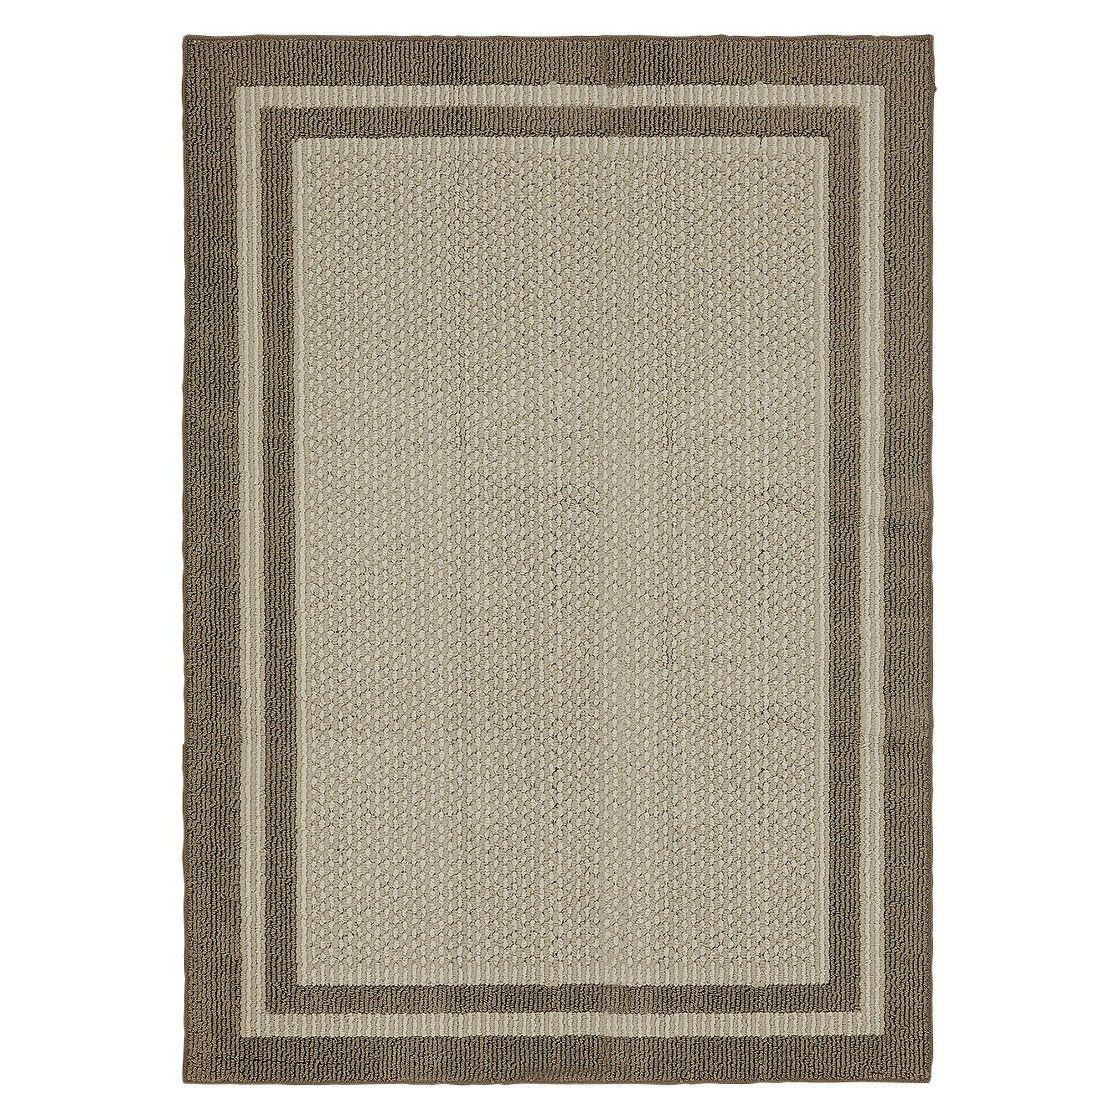 Mohawk Home Tufted Sisal Accent Rug